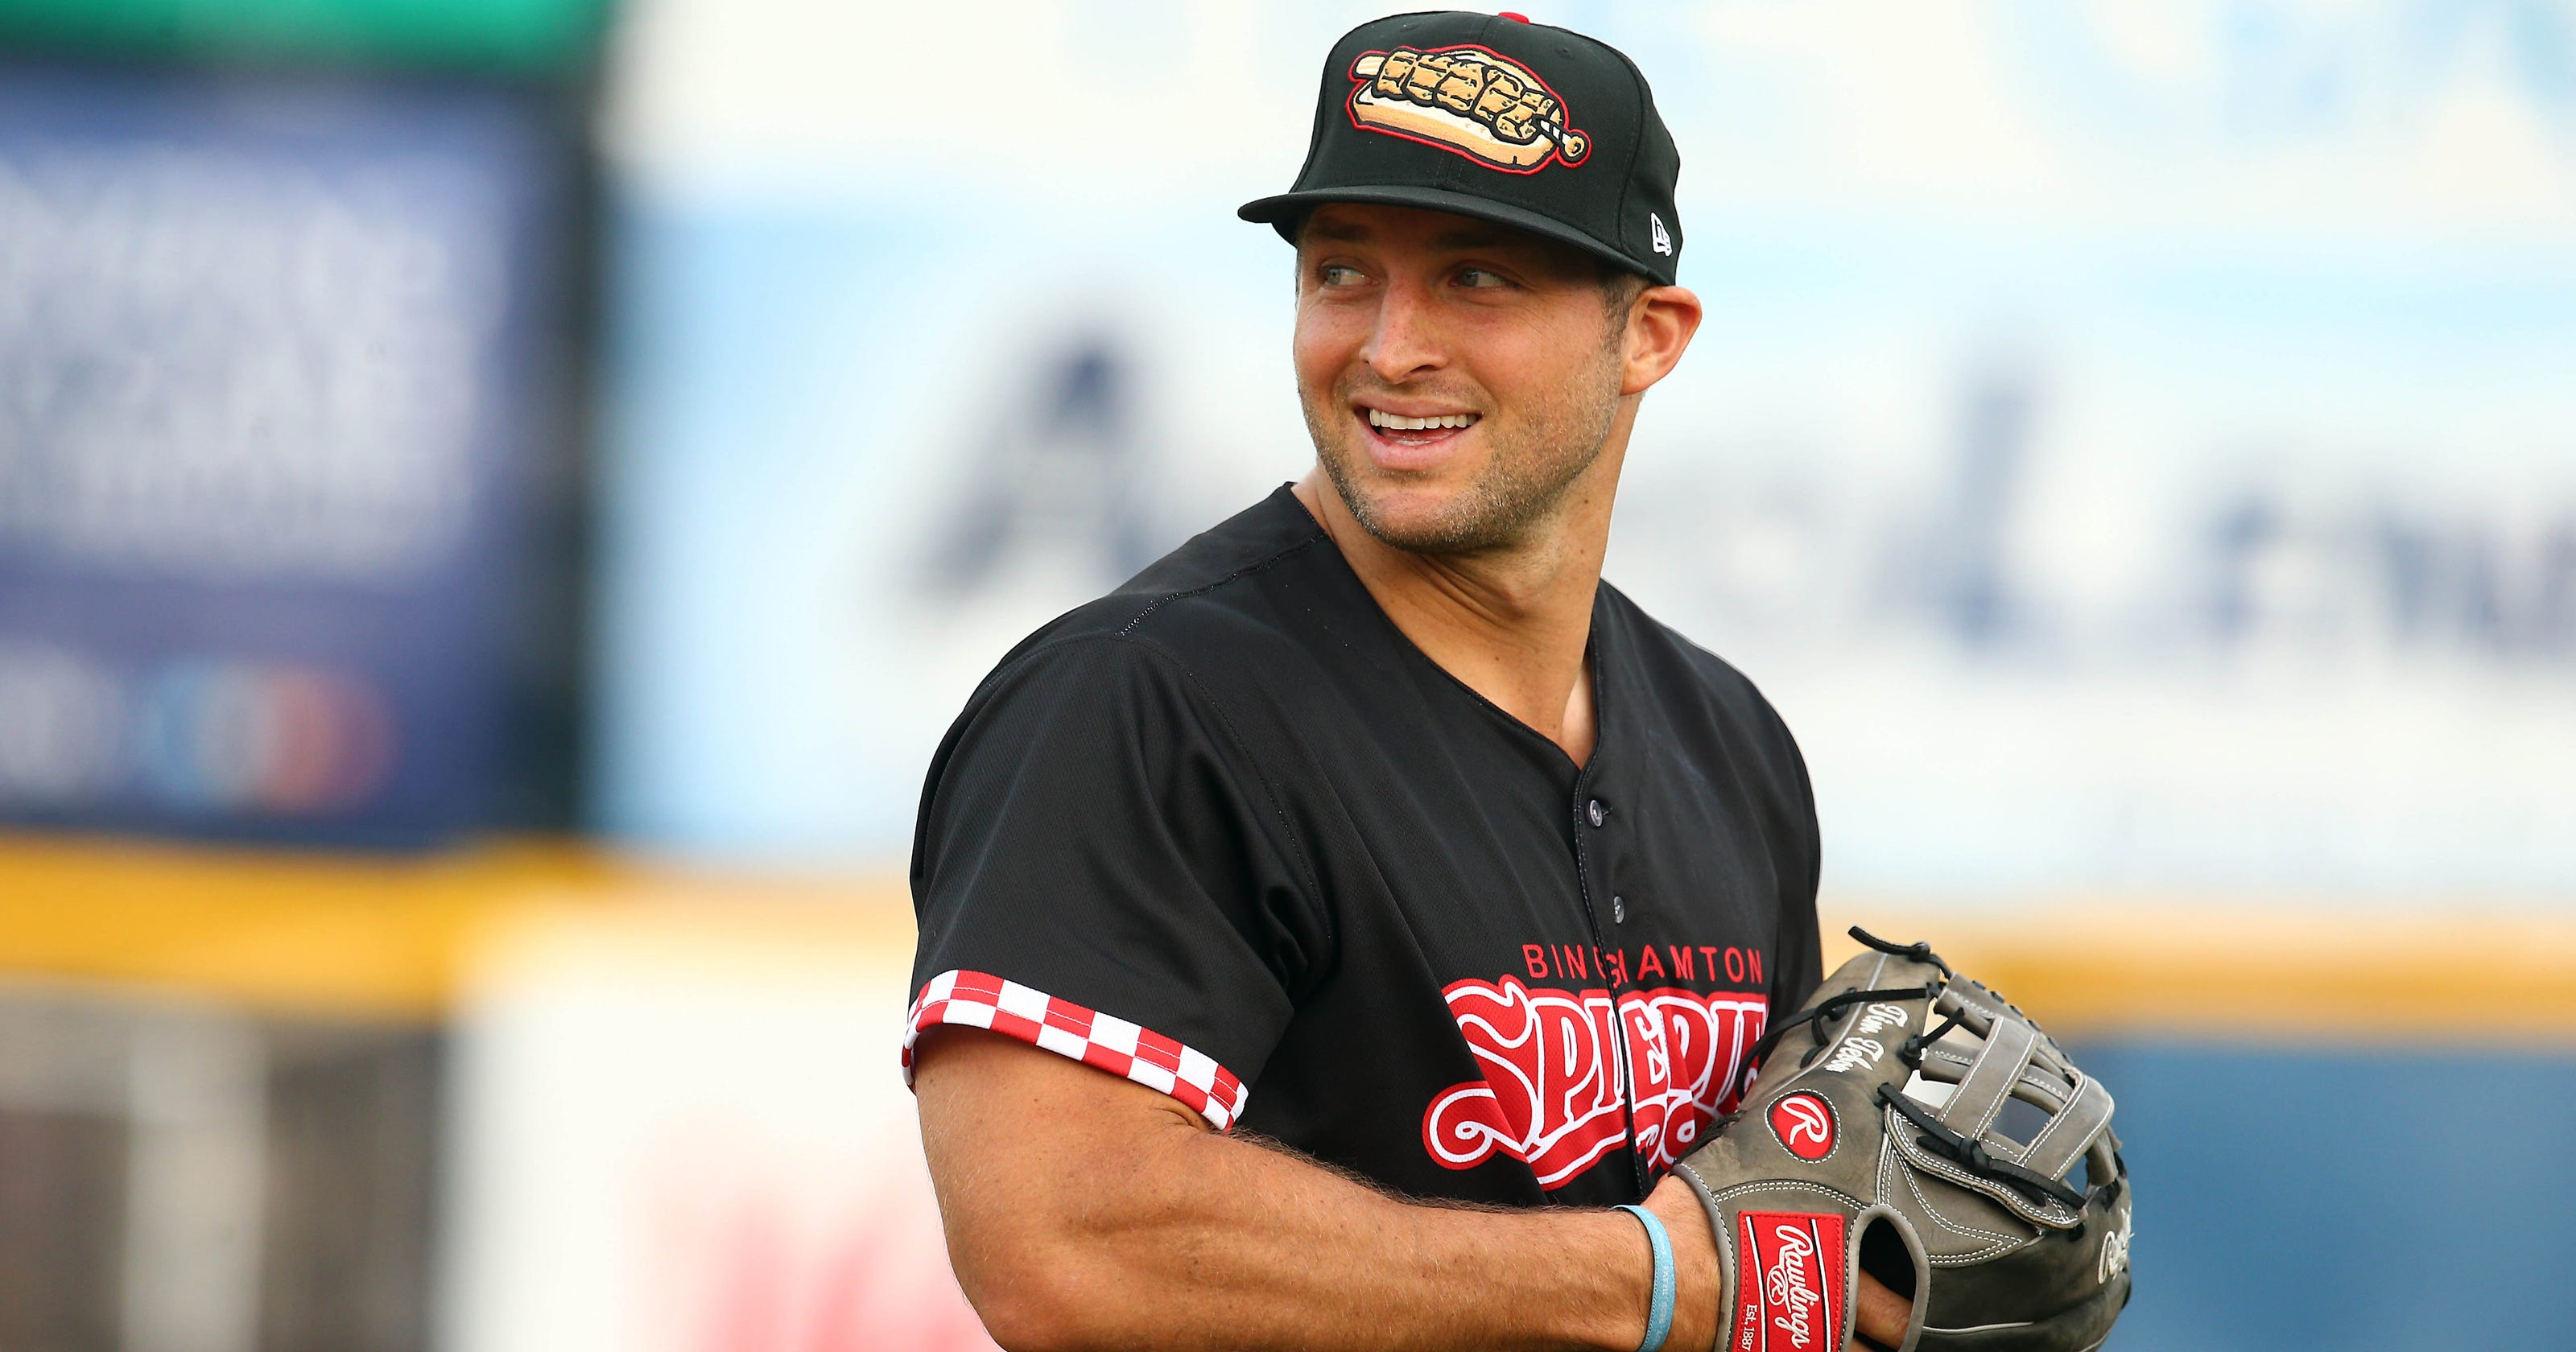 d71d4436154 Tim Tebow has shown signs he s improving as a baseball player